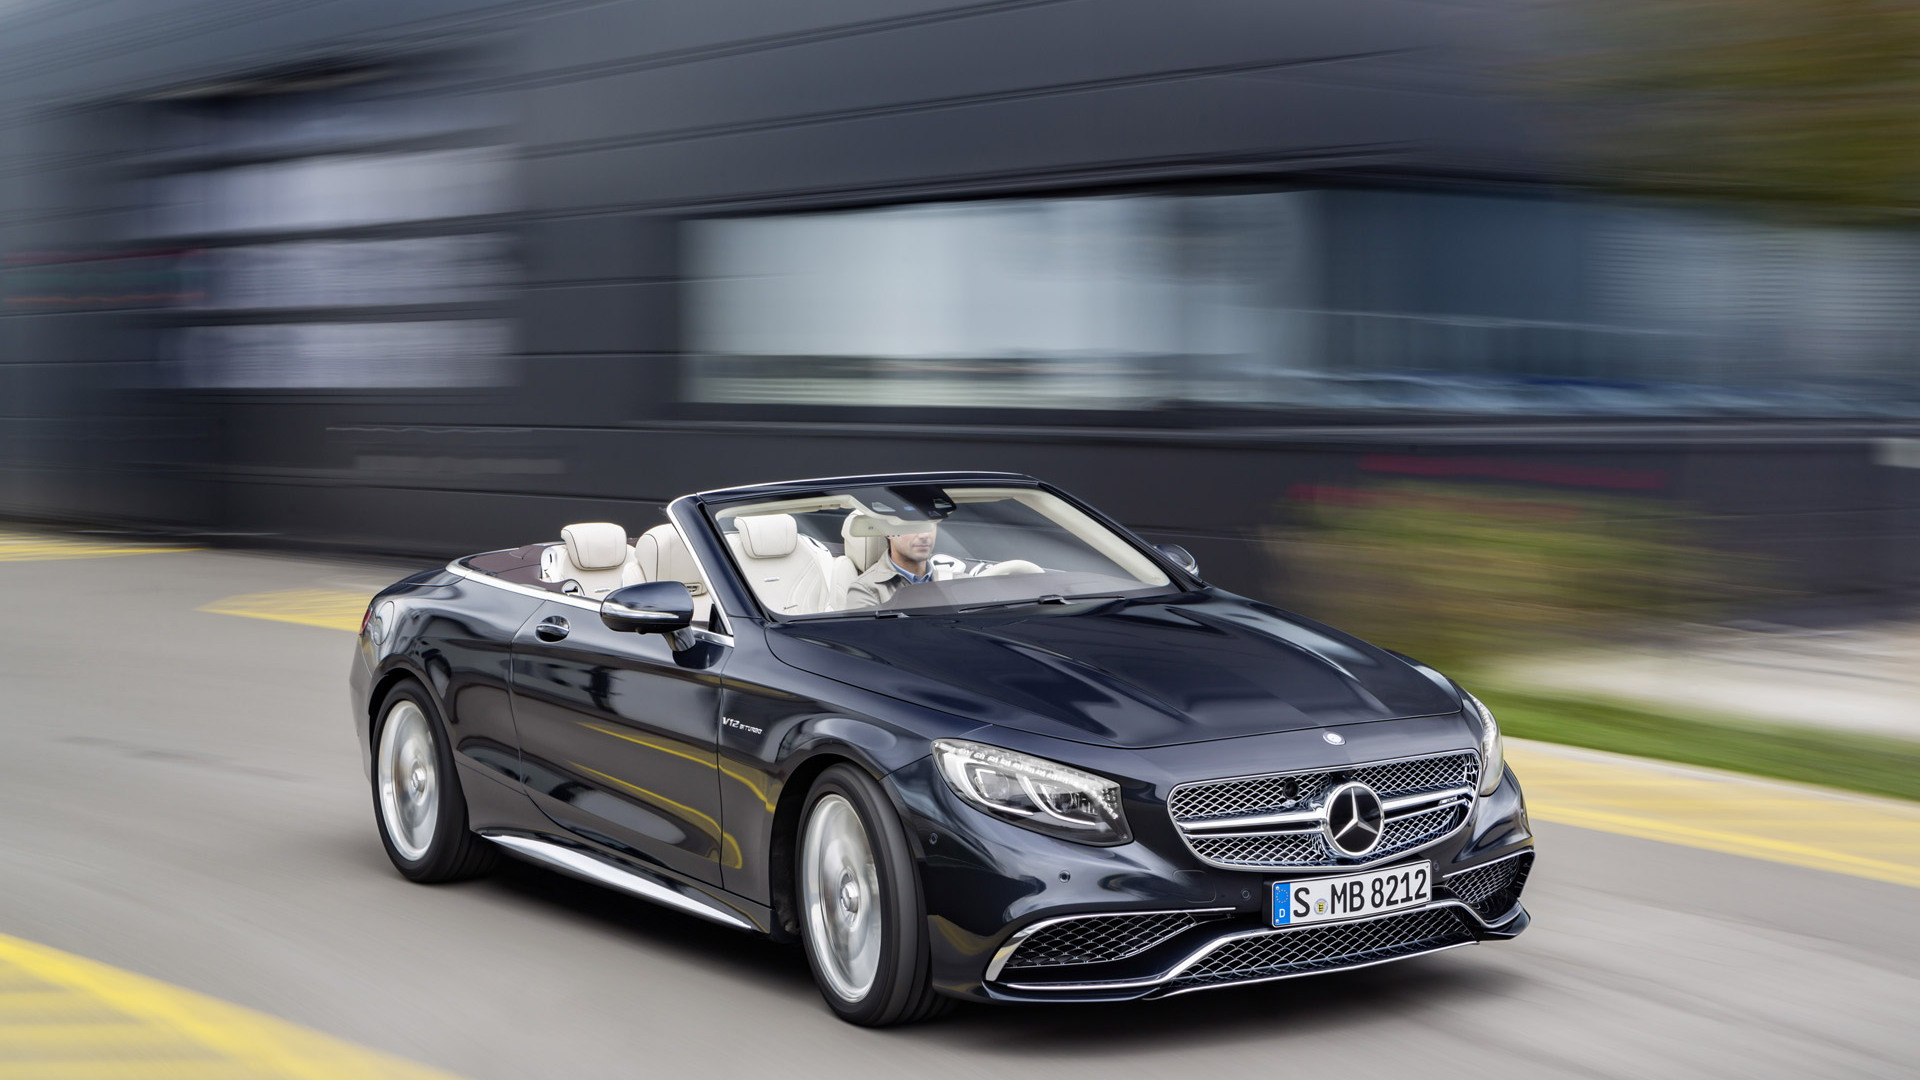 2017 Mercedes-AMG S65 Cabriolet